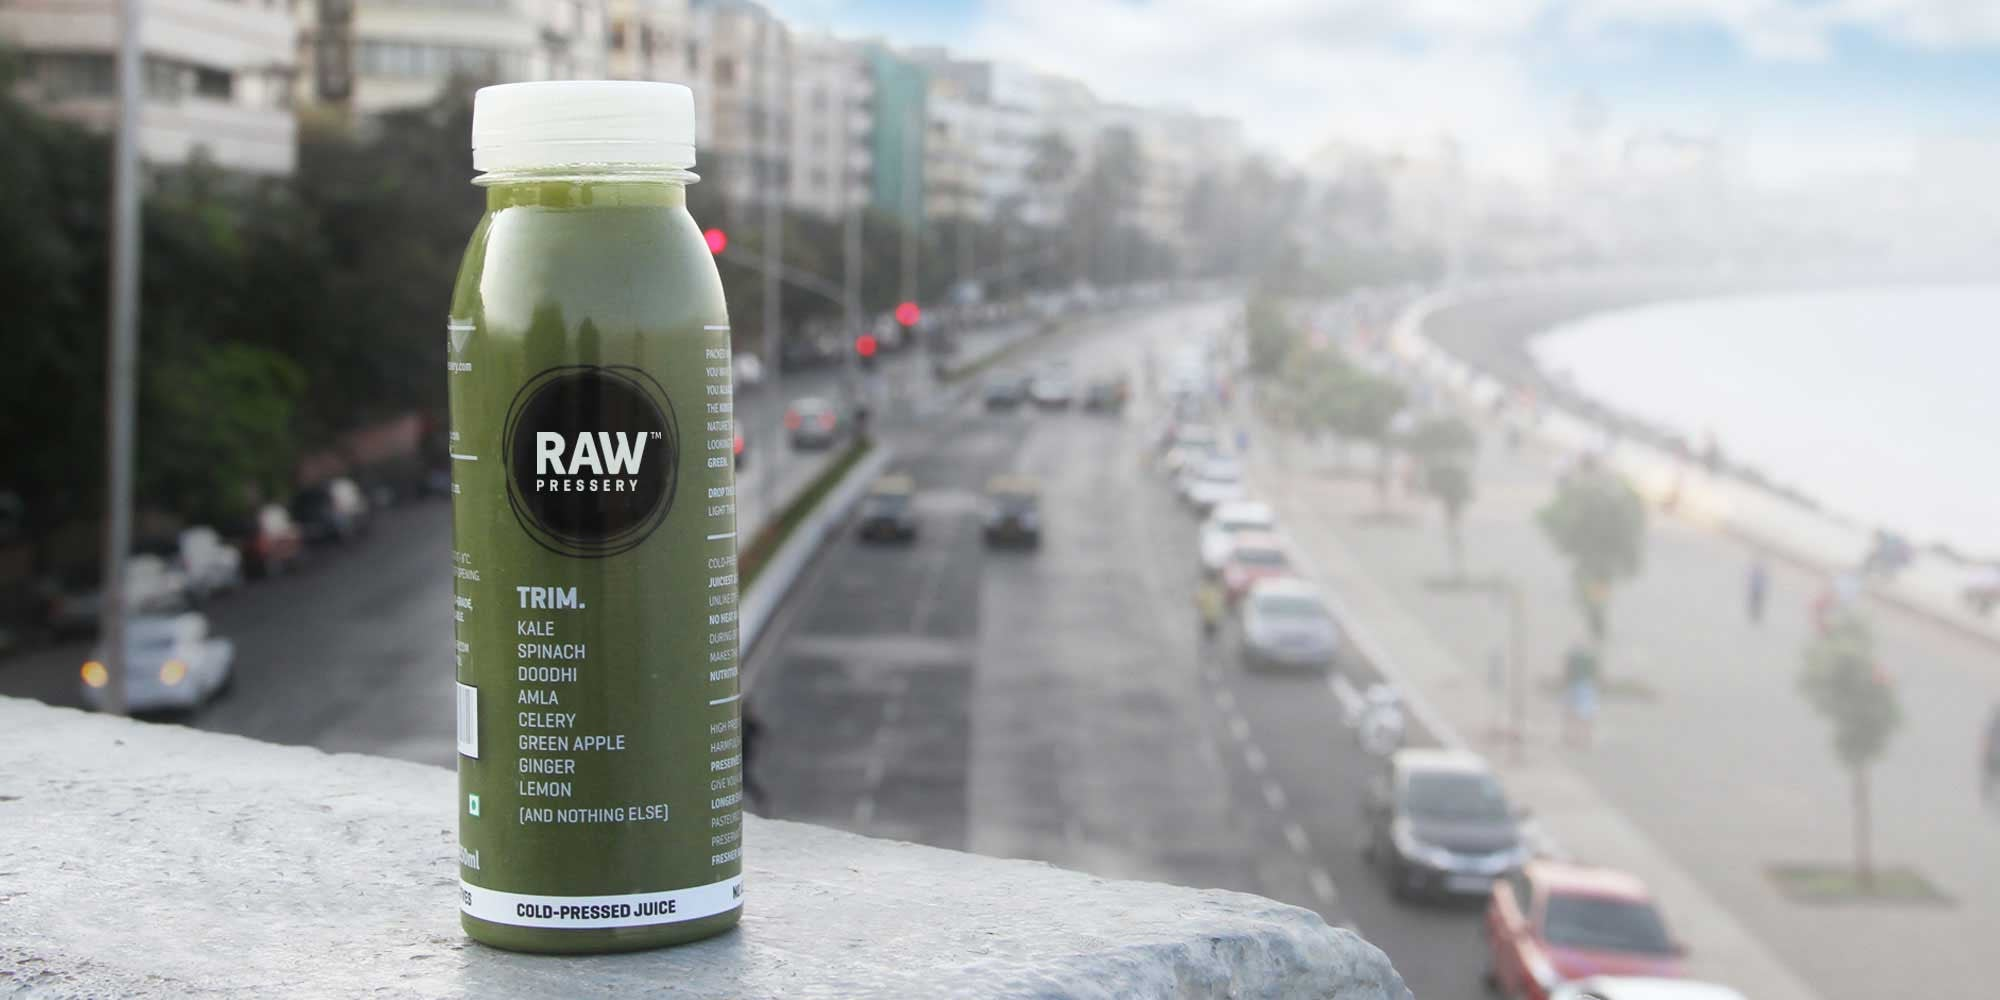 Fresh Cold Pressed Juice Delivery Online - Raw Pressery